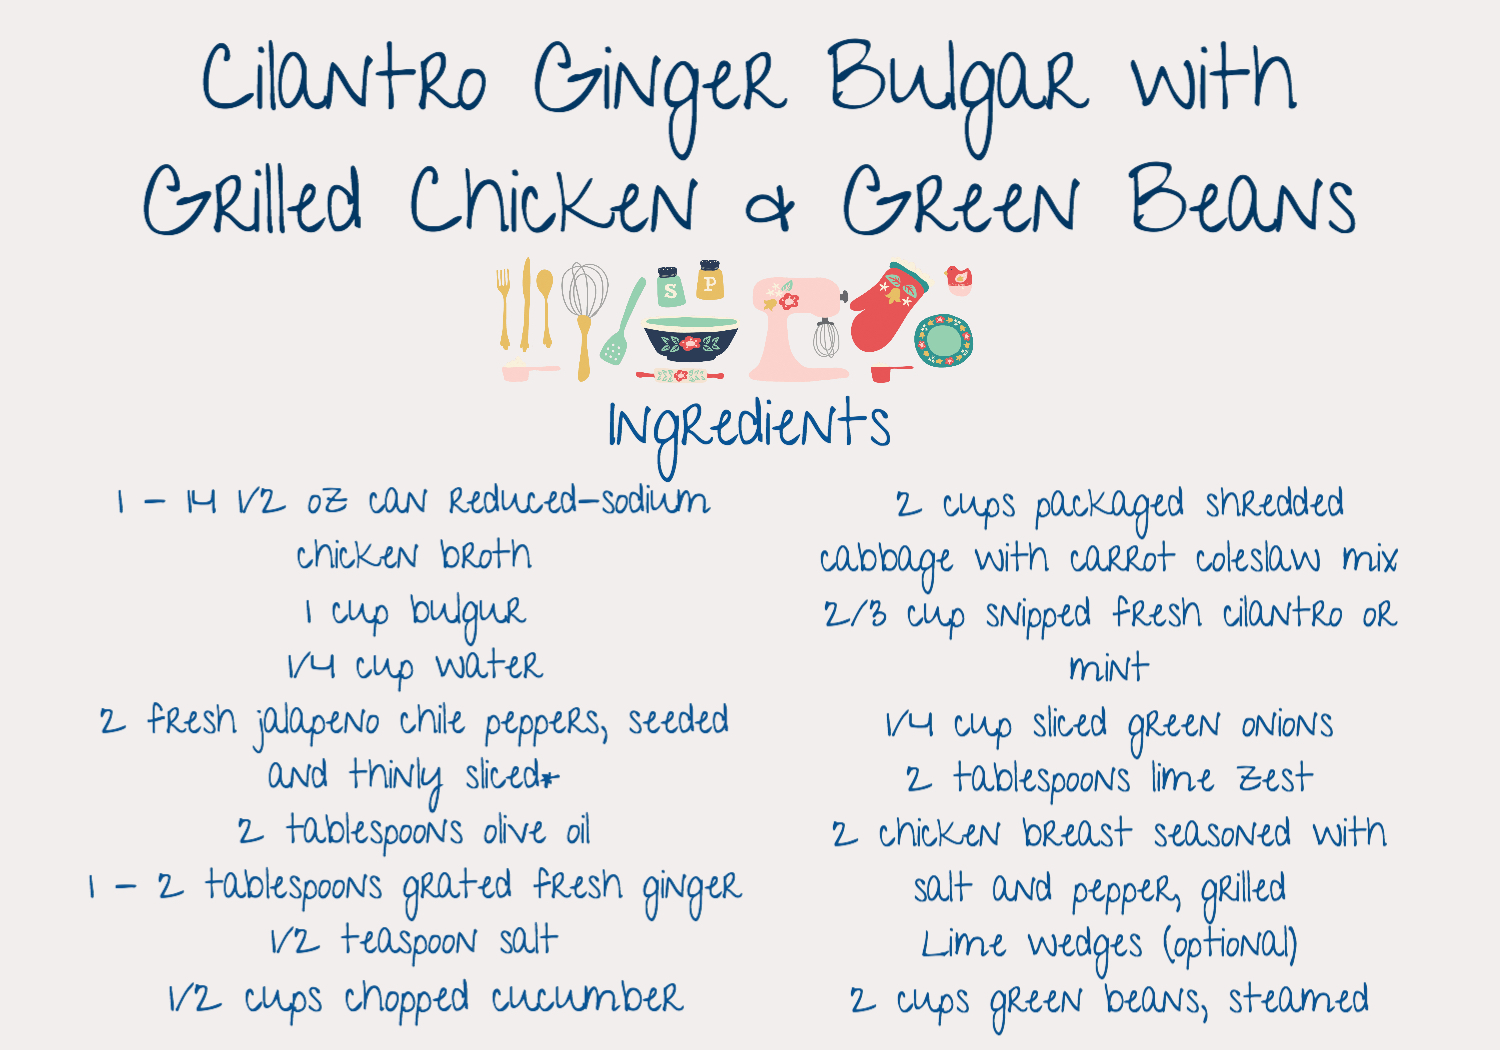 9_14 Cilantro Ginger Bulgar Ingredients .jpg